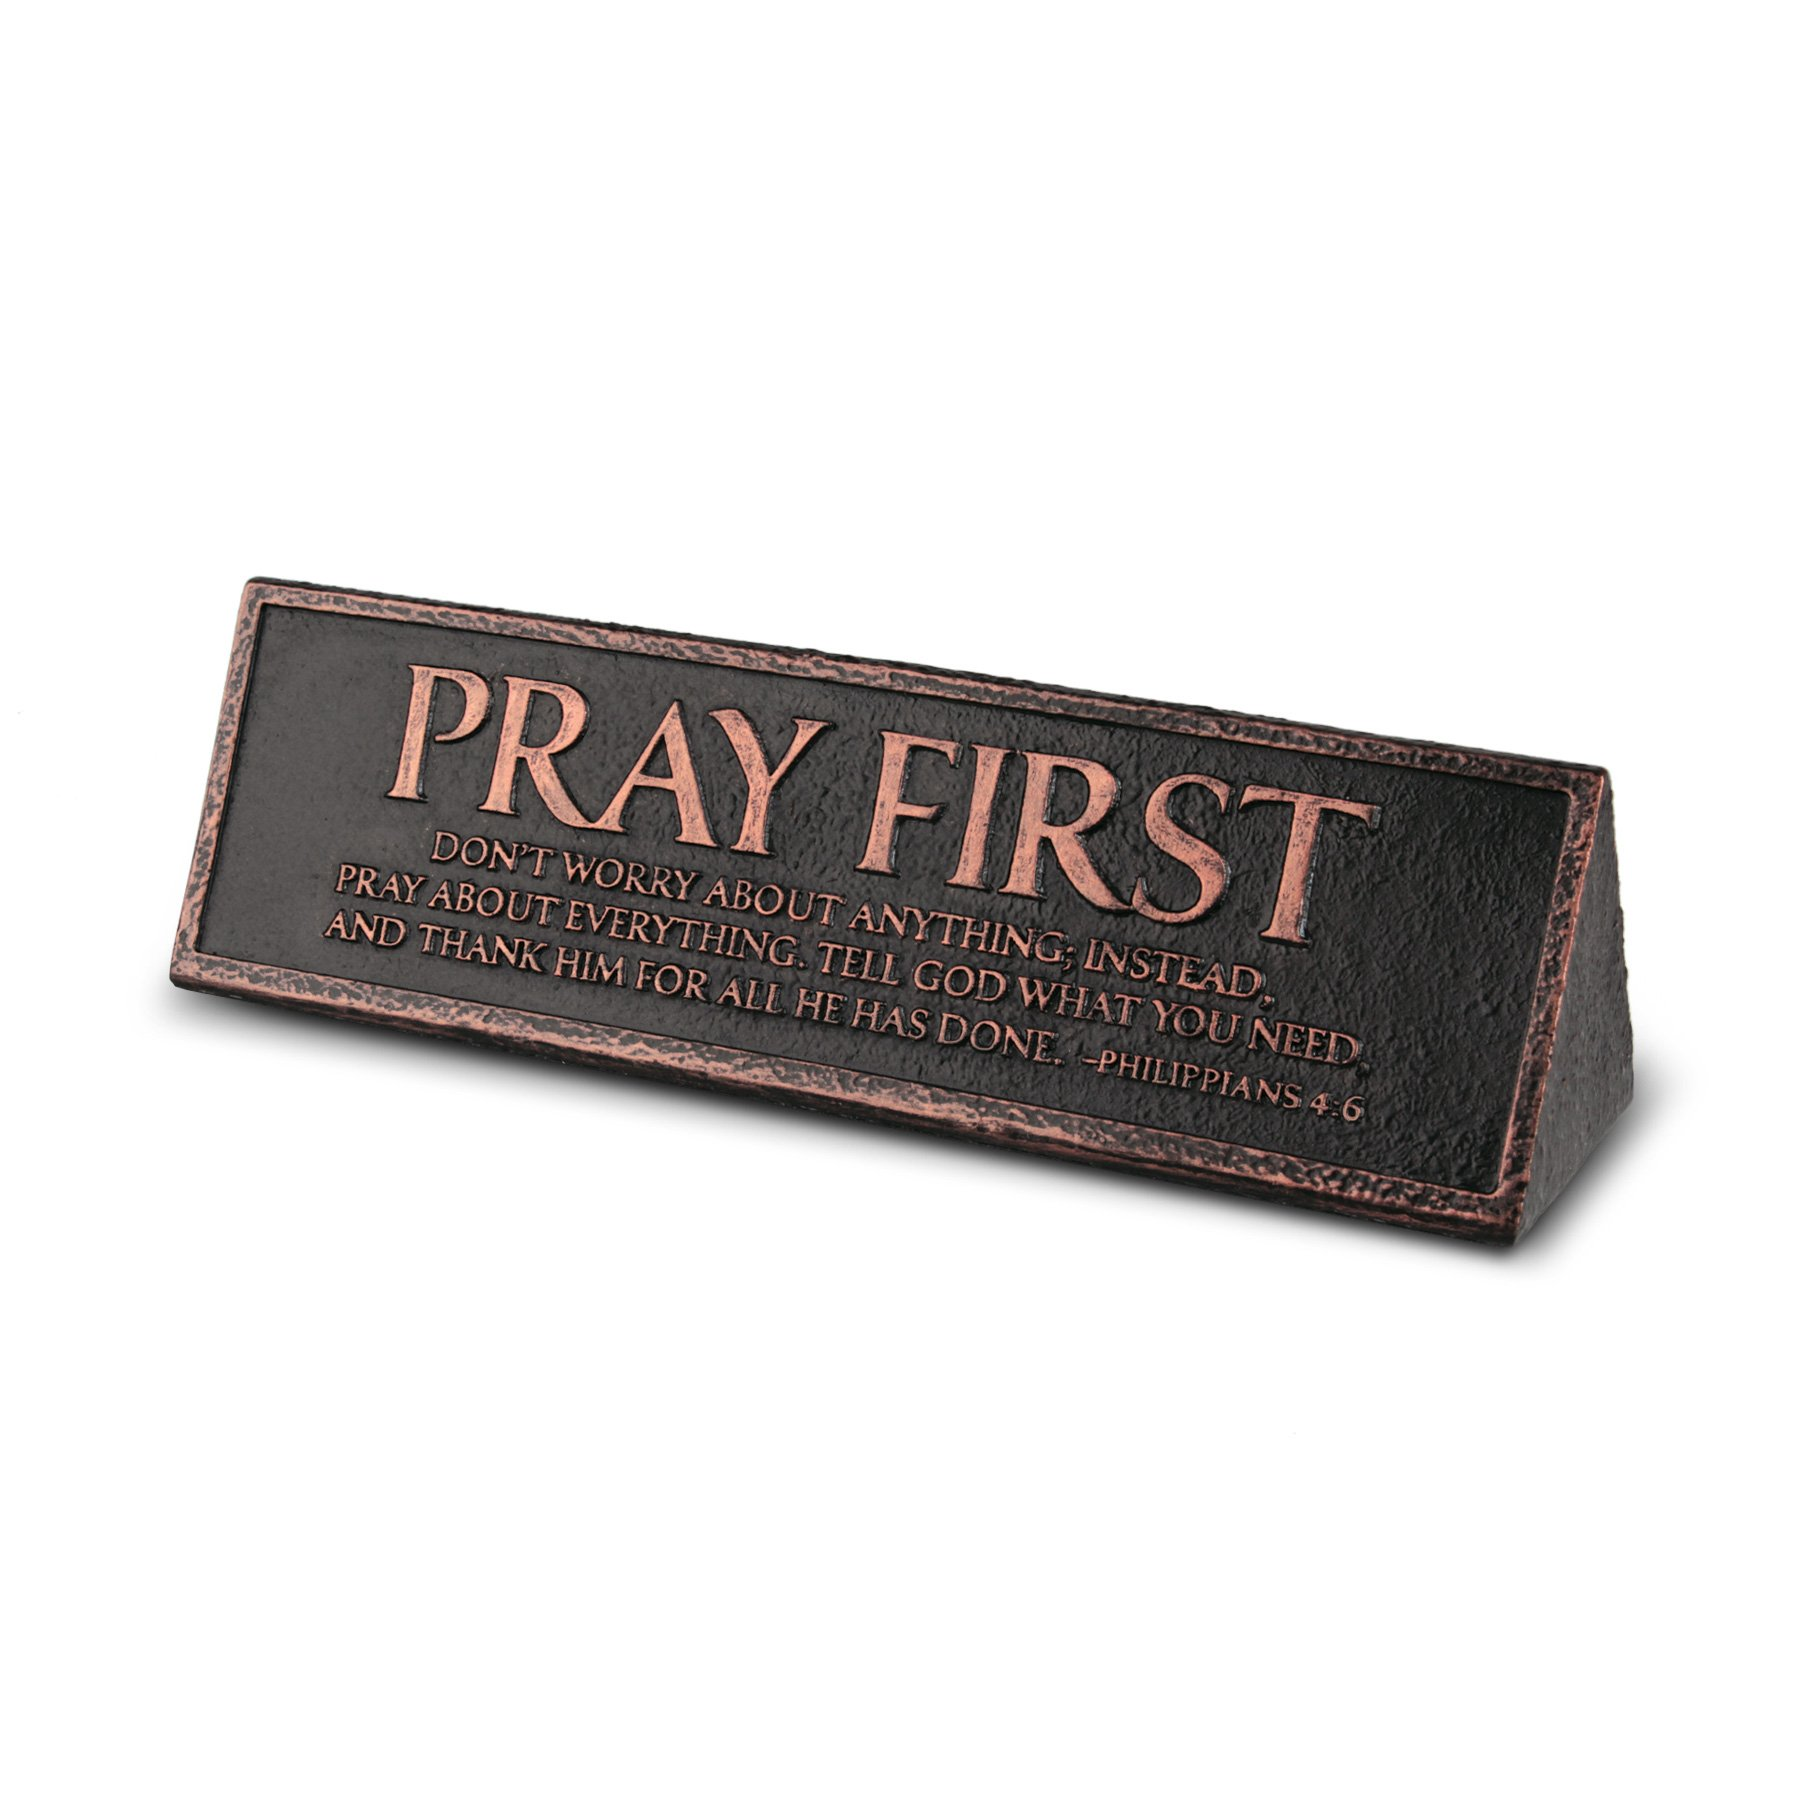 Lighthouse Christian Products Cast Stone & Copper Pray First Desktop Reminder Plaque